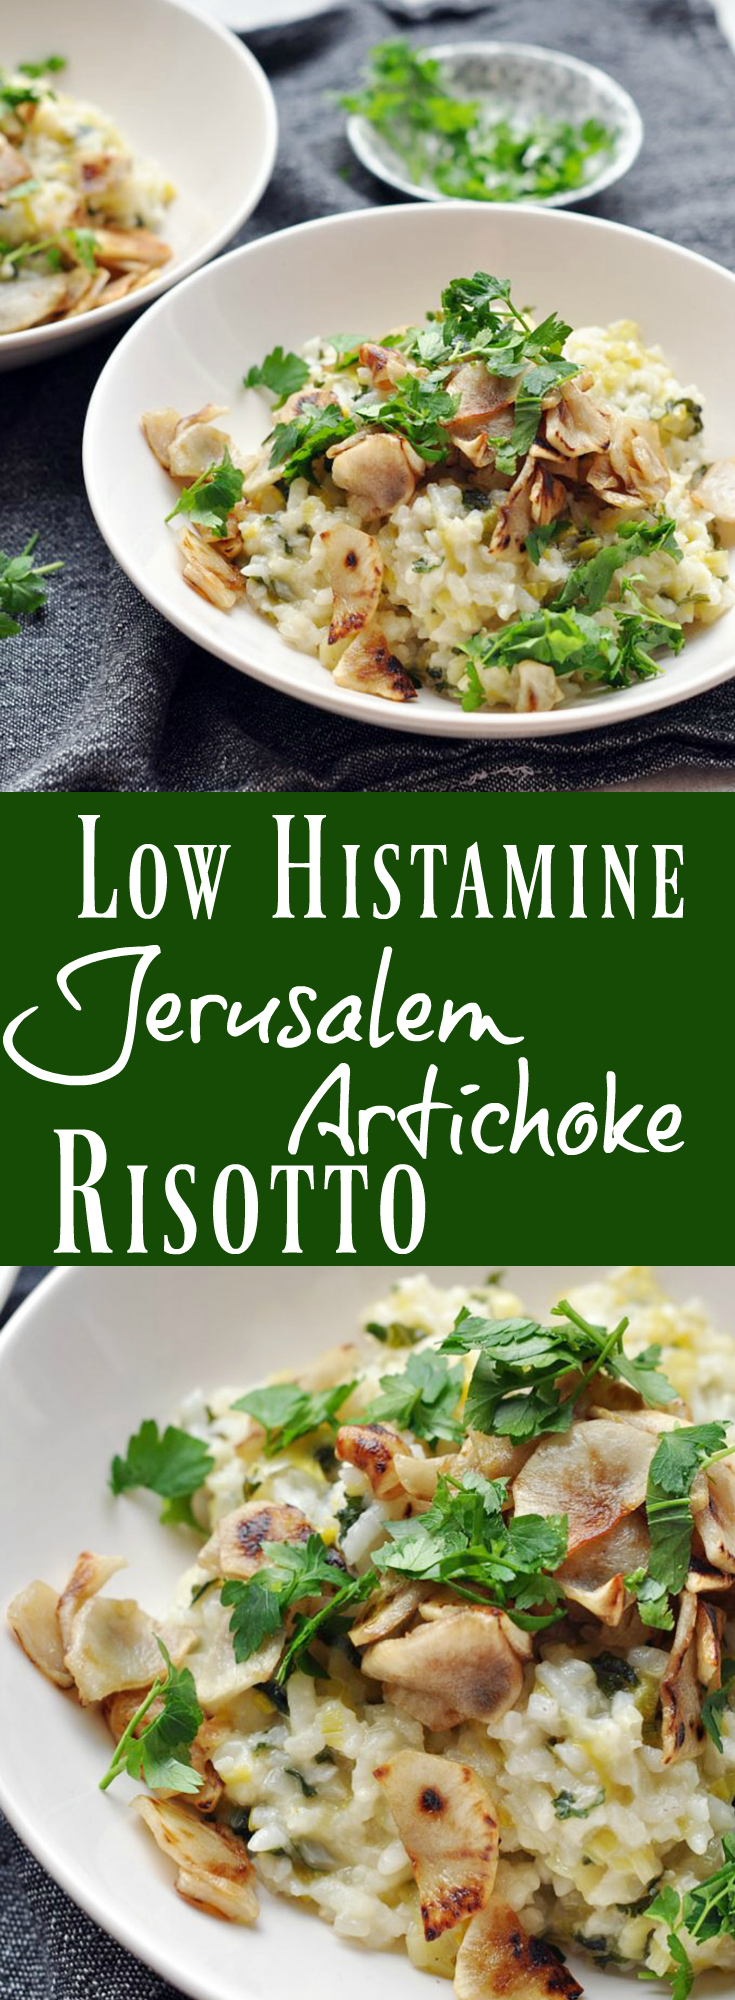 Low Histamine Jerusalem Artichoke Risotto. Pin it!